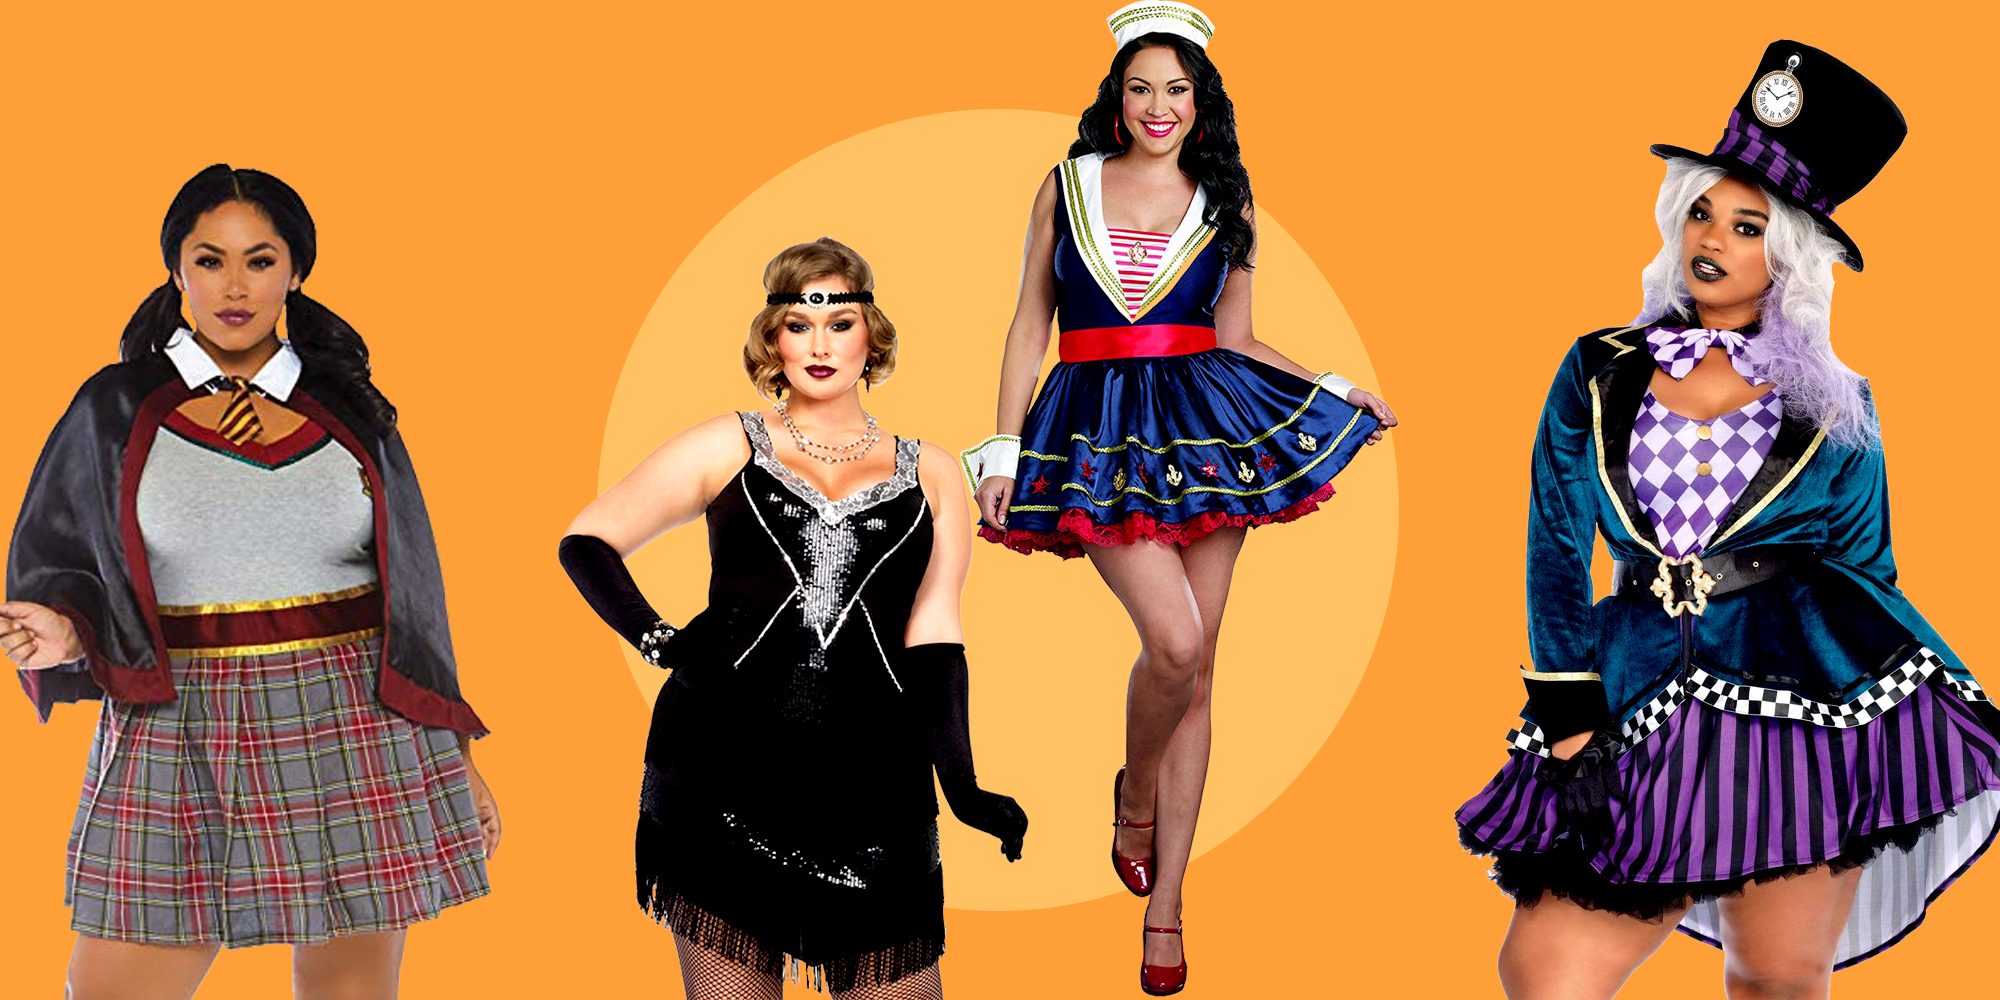 Easy halloween costumes for women don't have to take a ton of effort! 40 Best Plus Size Halloween Costumes Ideas 2021 Sexy Scary And Cute Plus Size Costumes